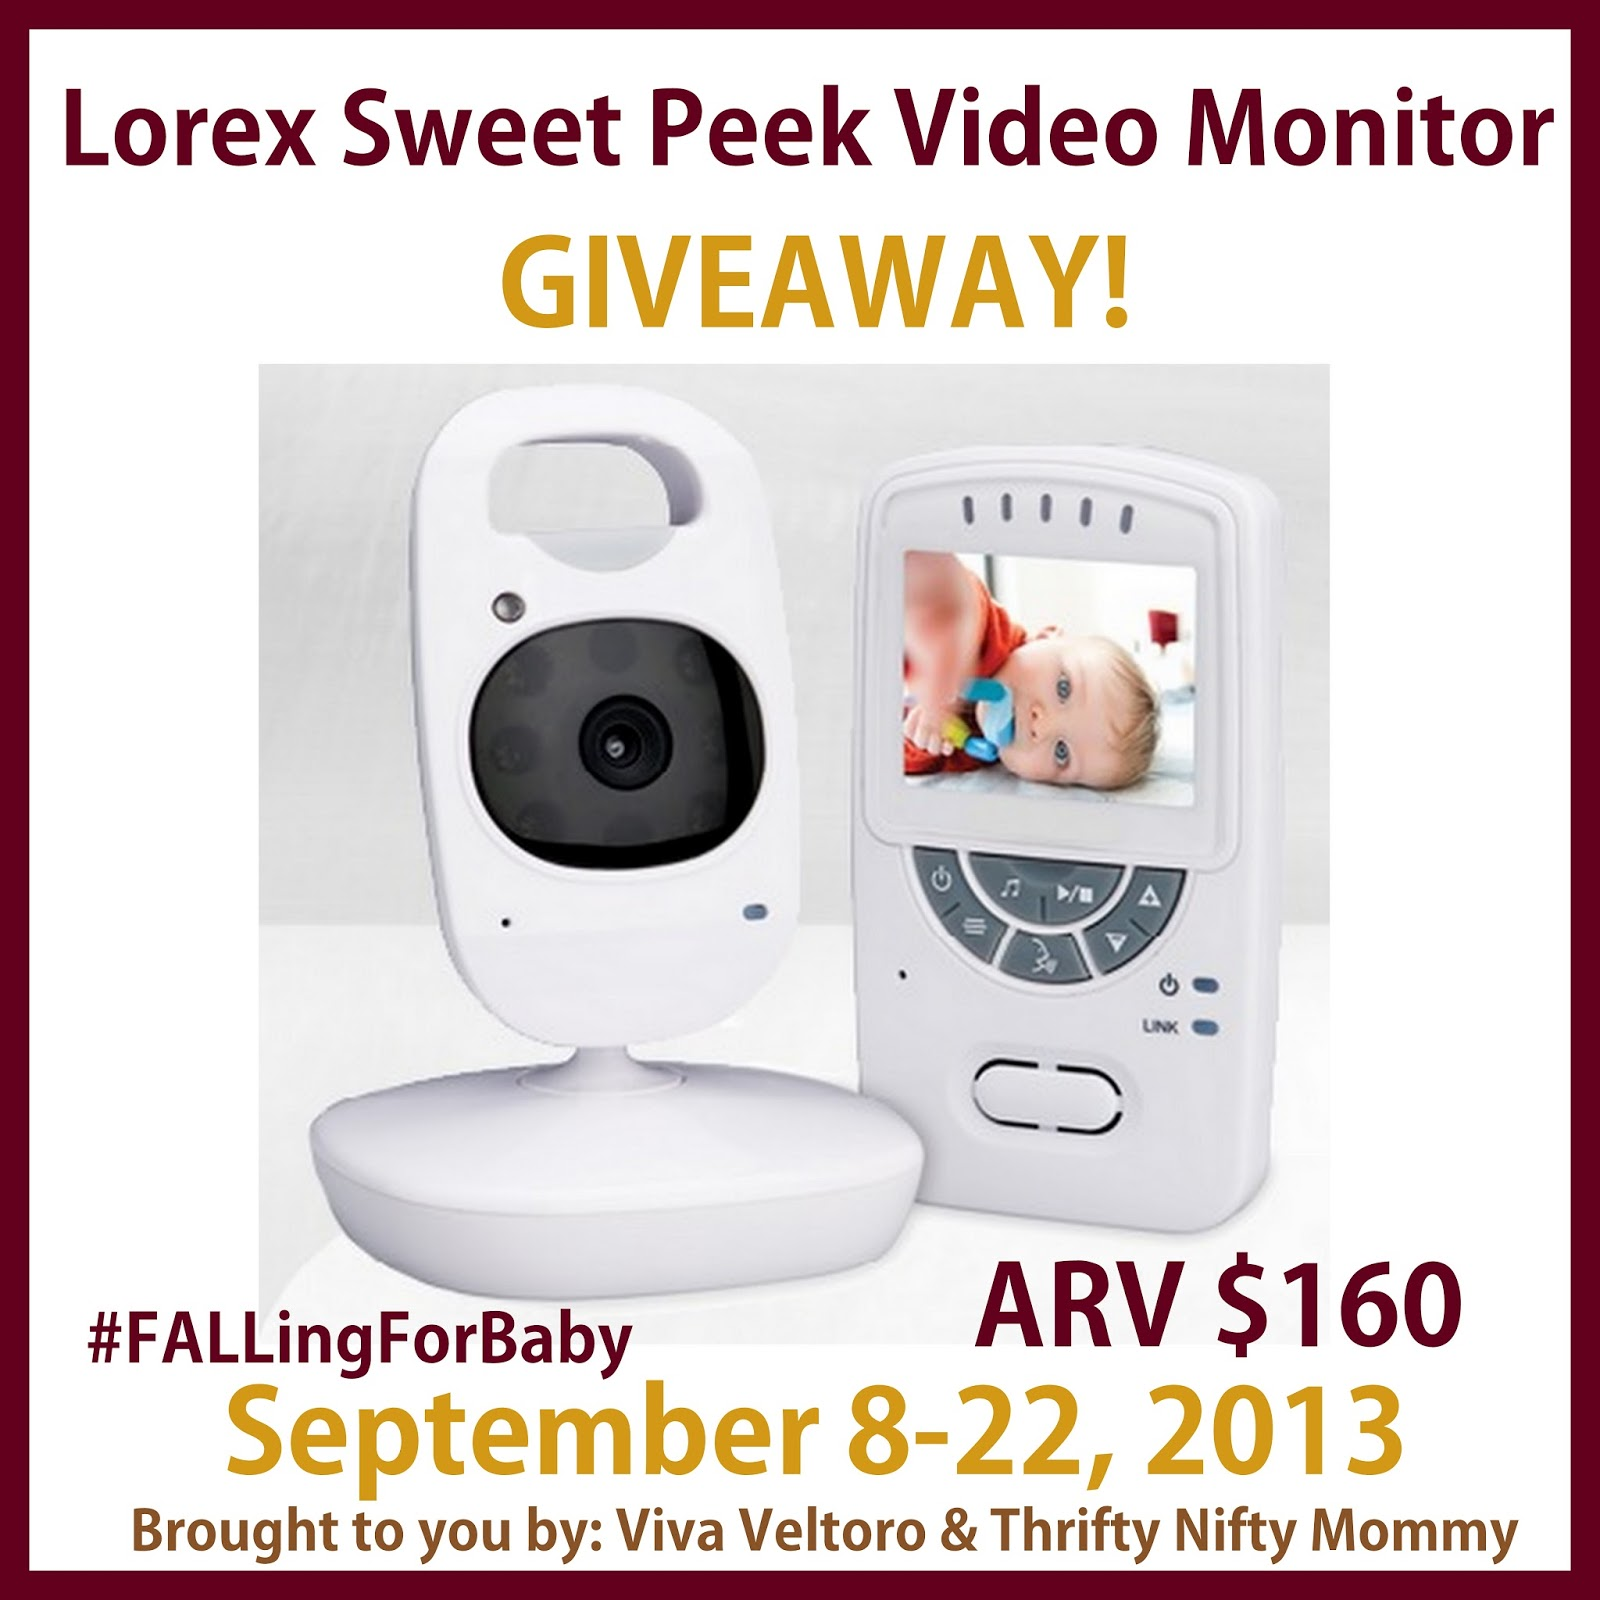 lorex sweet peek video monitor giveaway fallingforbaby thrifty nifty mommy. Black Bedroom Furniture Sets. Home Design Ideas